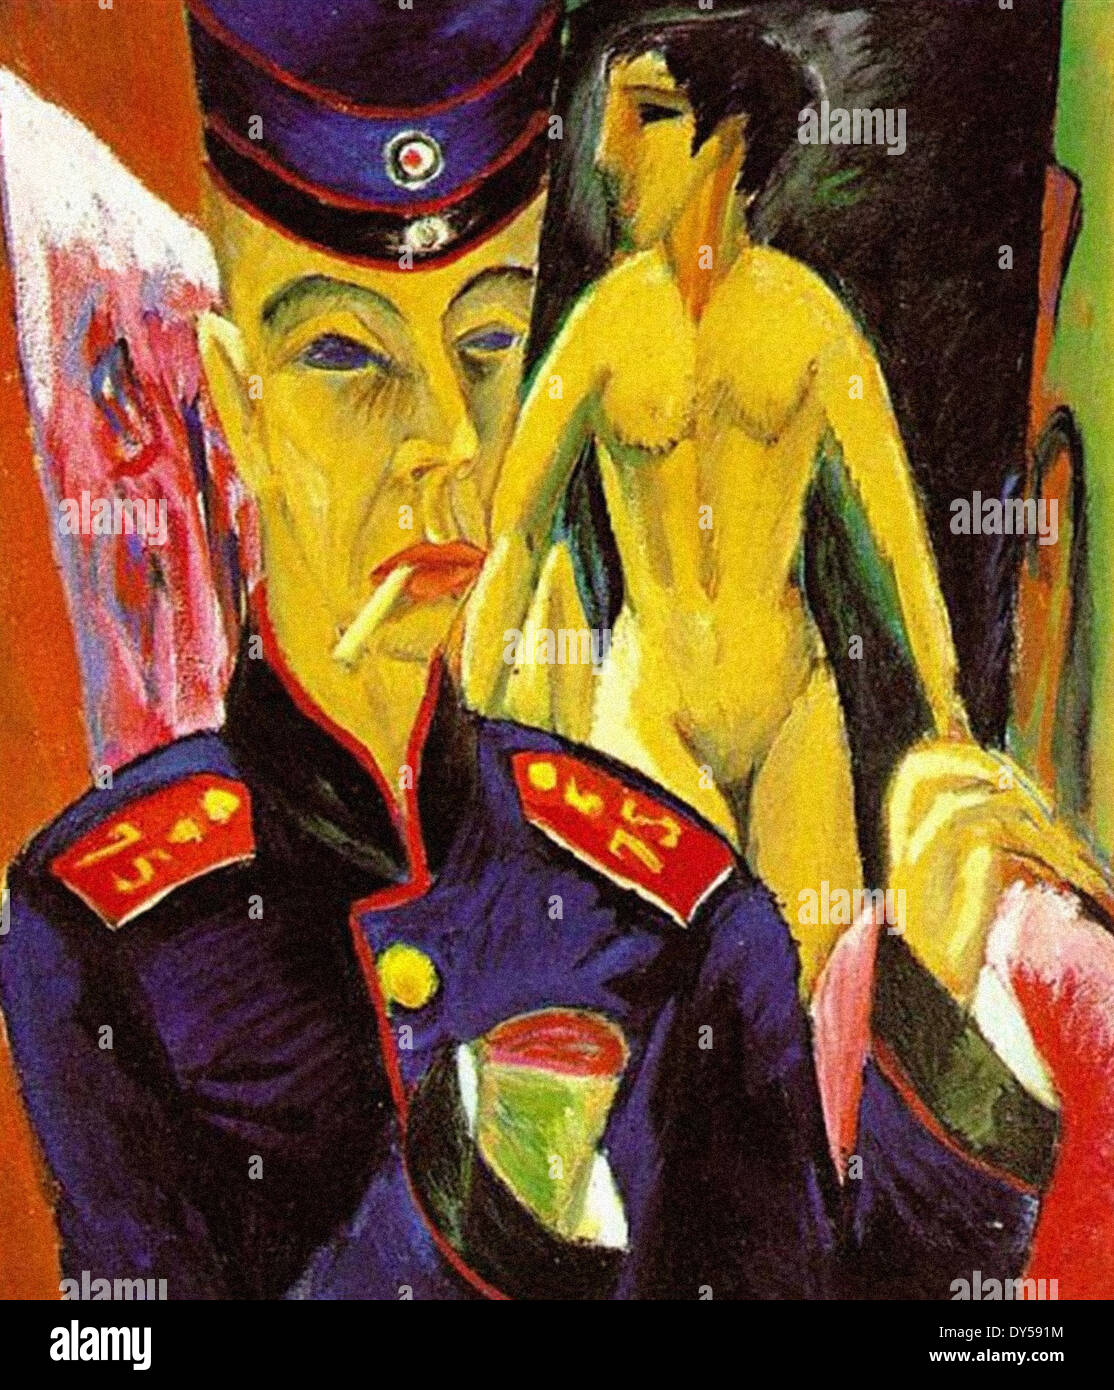 Ernst Ludwig Kirchner Self-Portrait as a Soldier - Stock Image